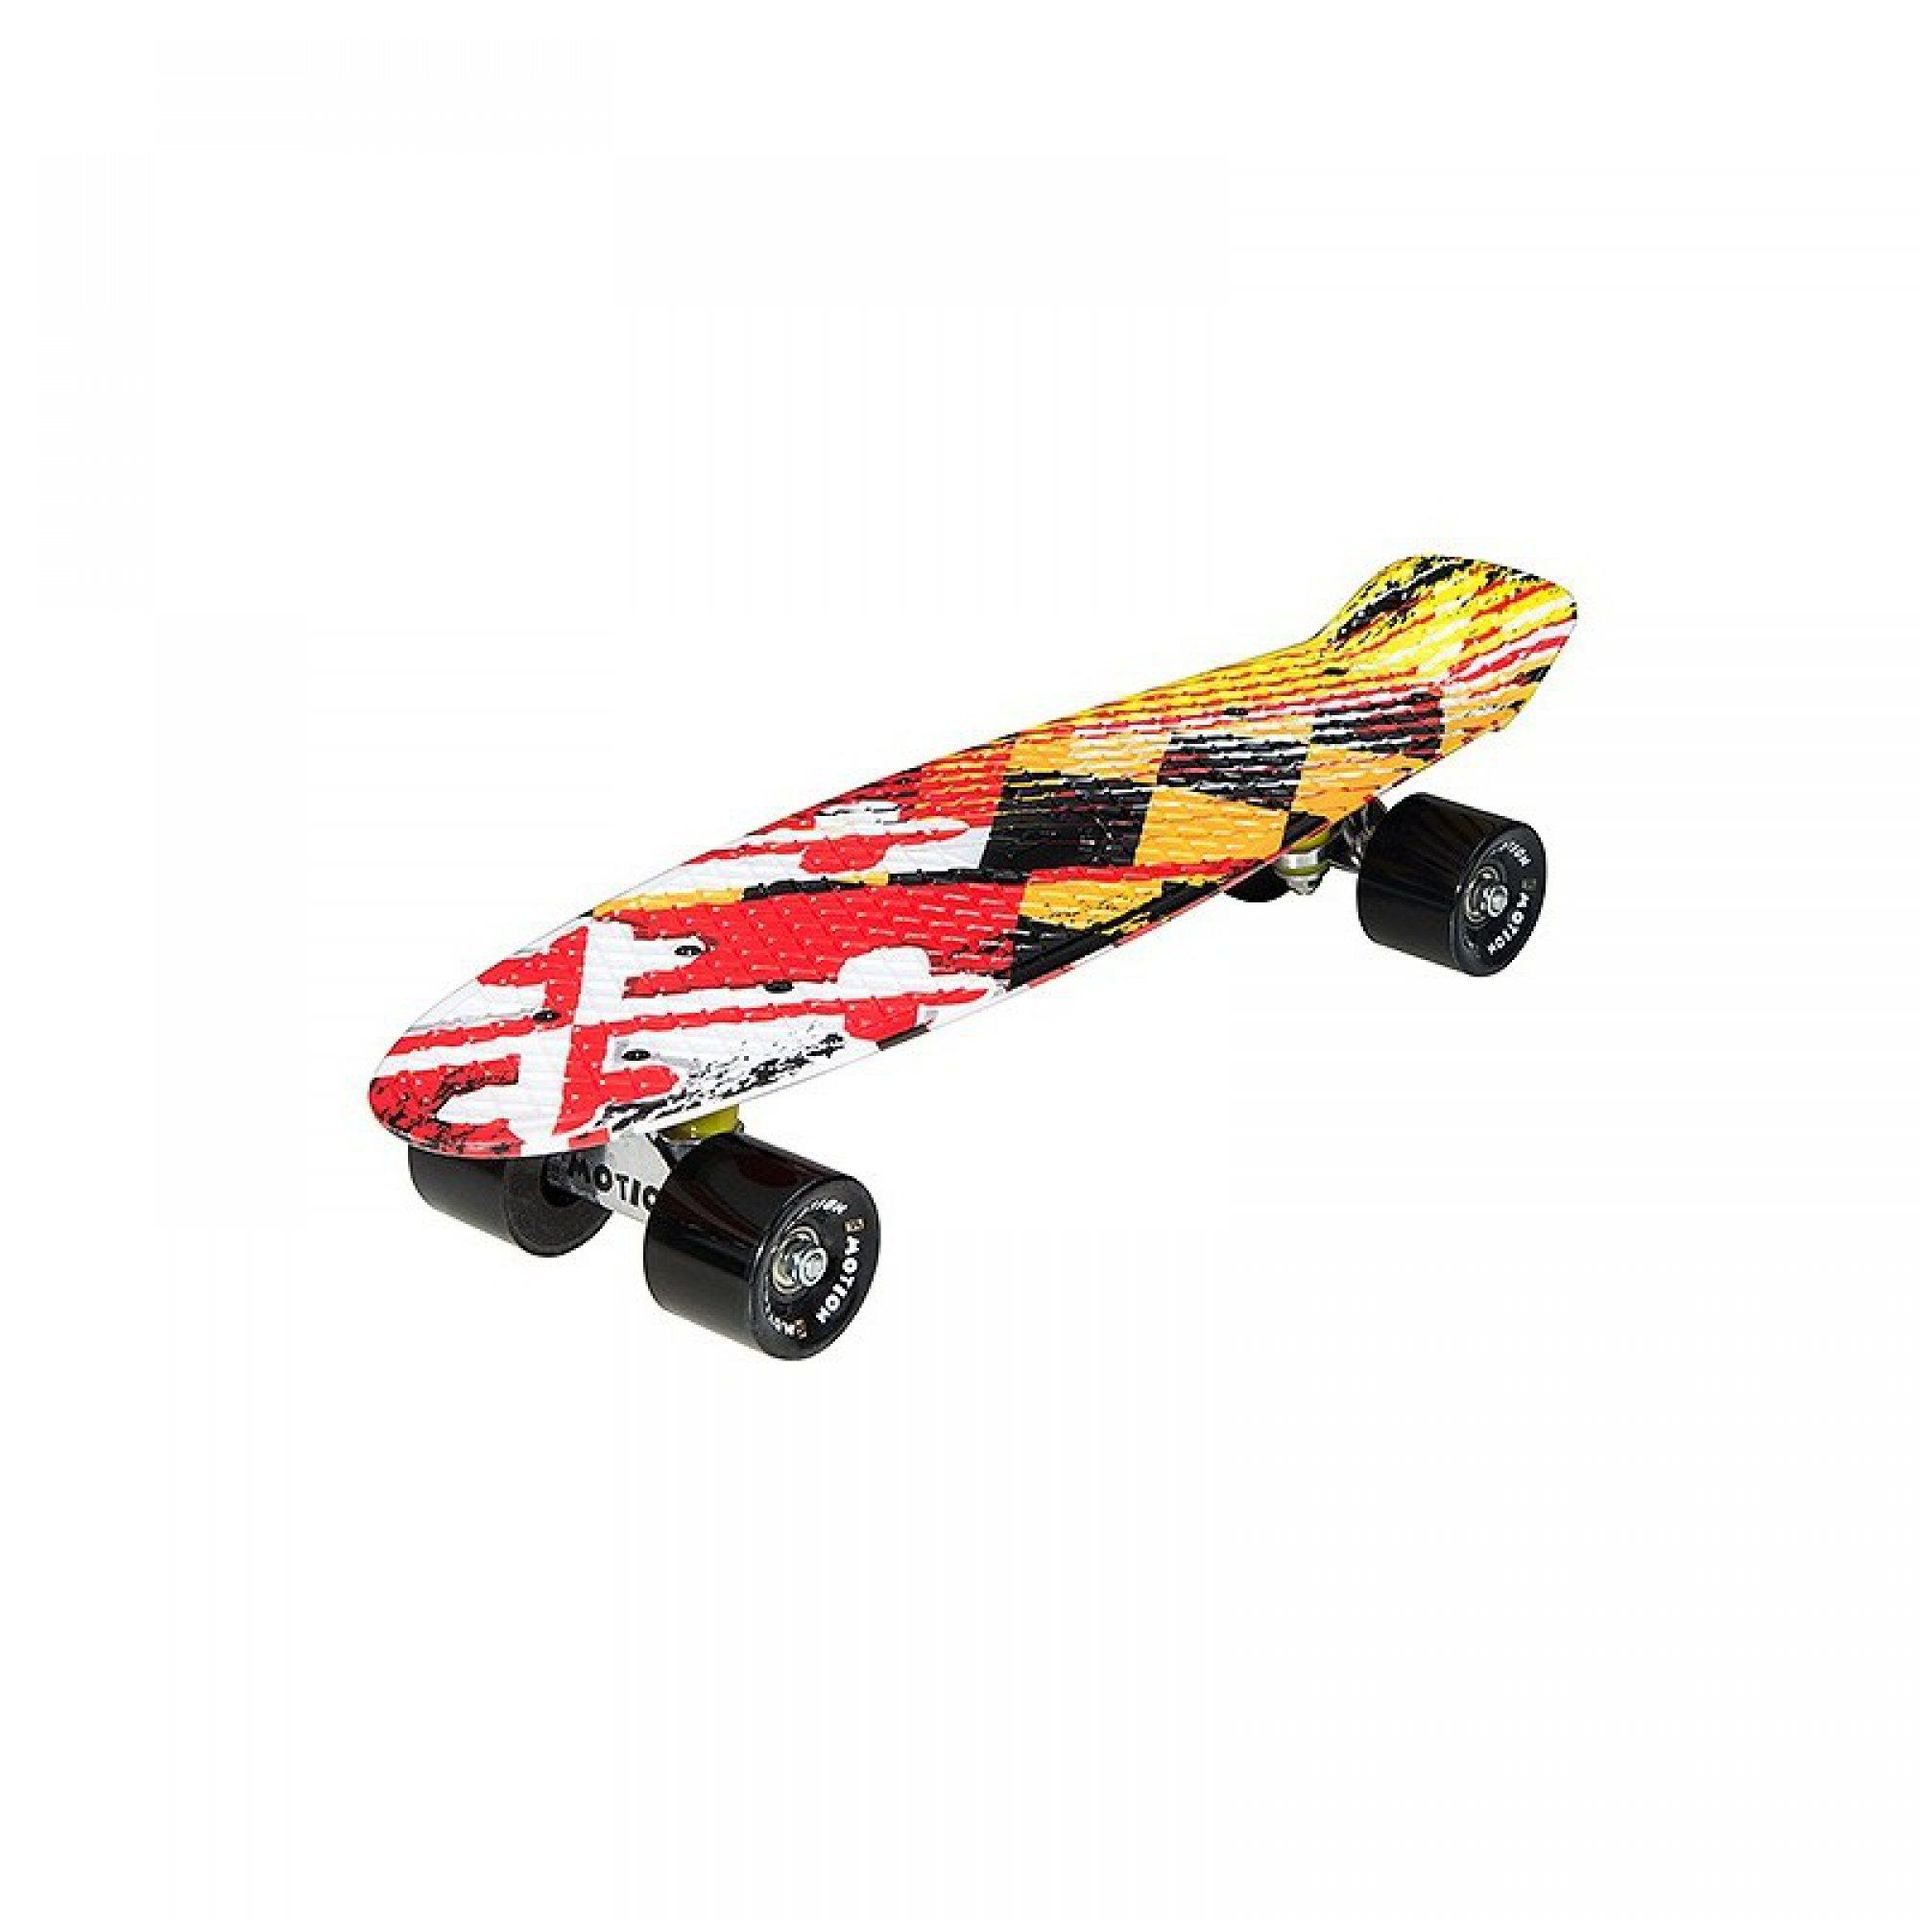 FISHBOARD KIDZ MOTION WATERMELON DECKBOARD 306 1